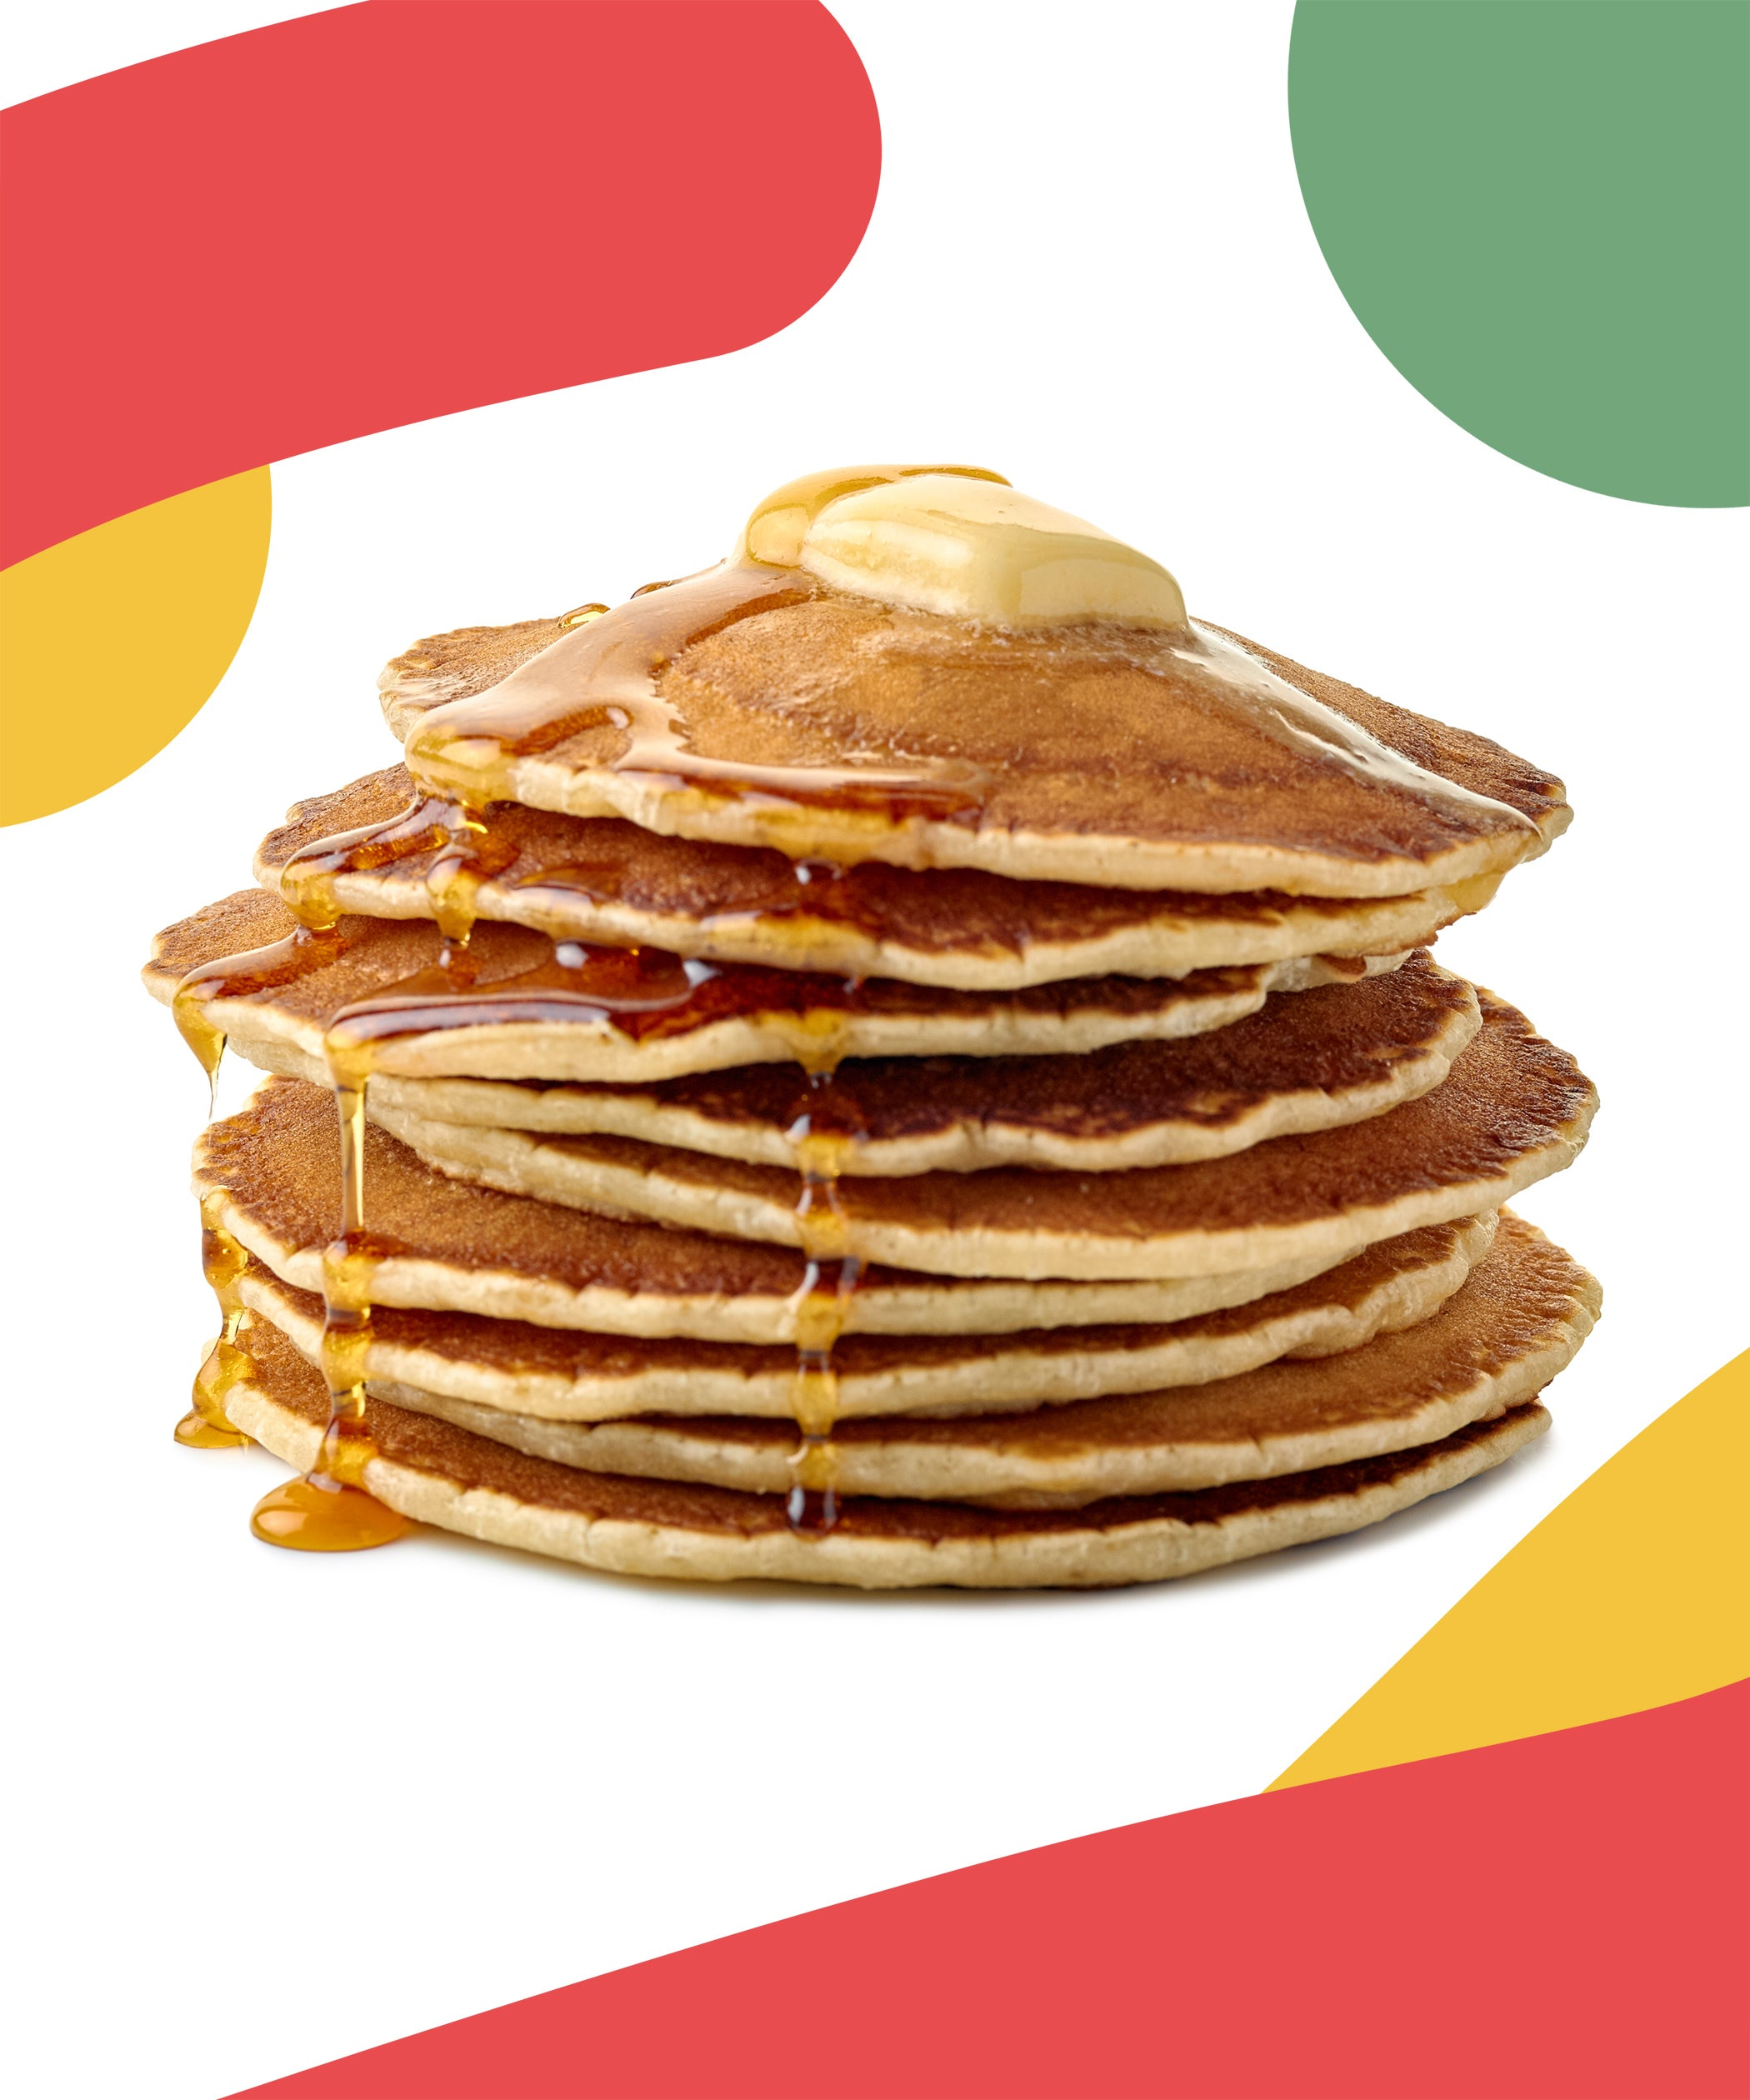 Ihop Free Pancakes For National Pancake Day Today 2020